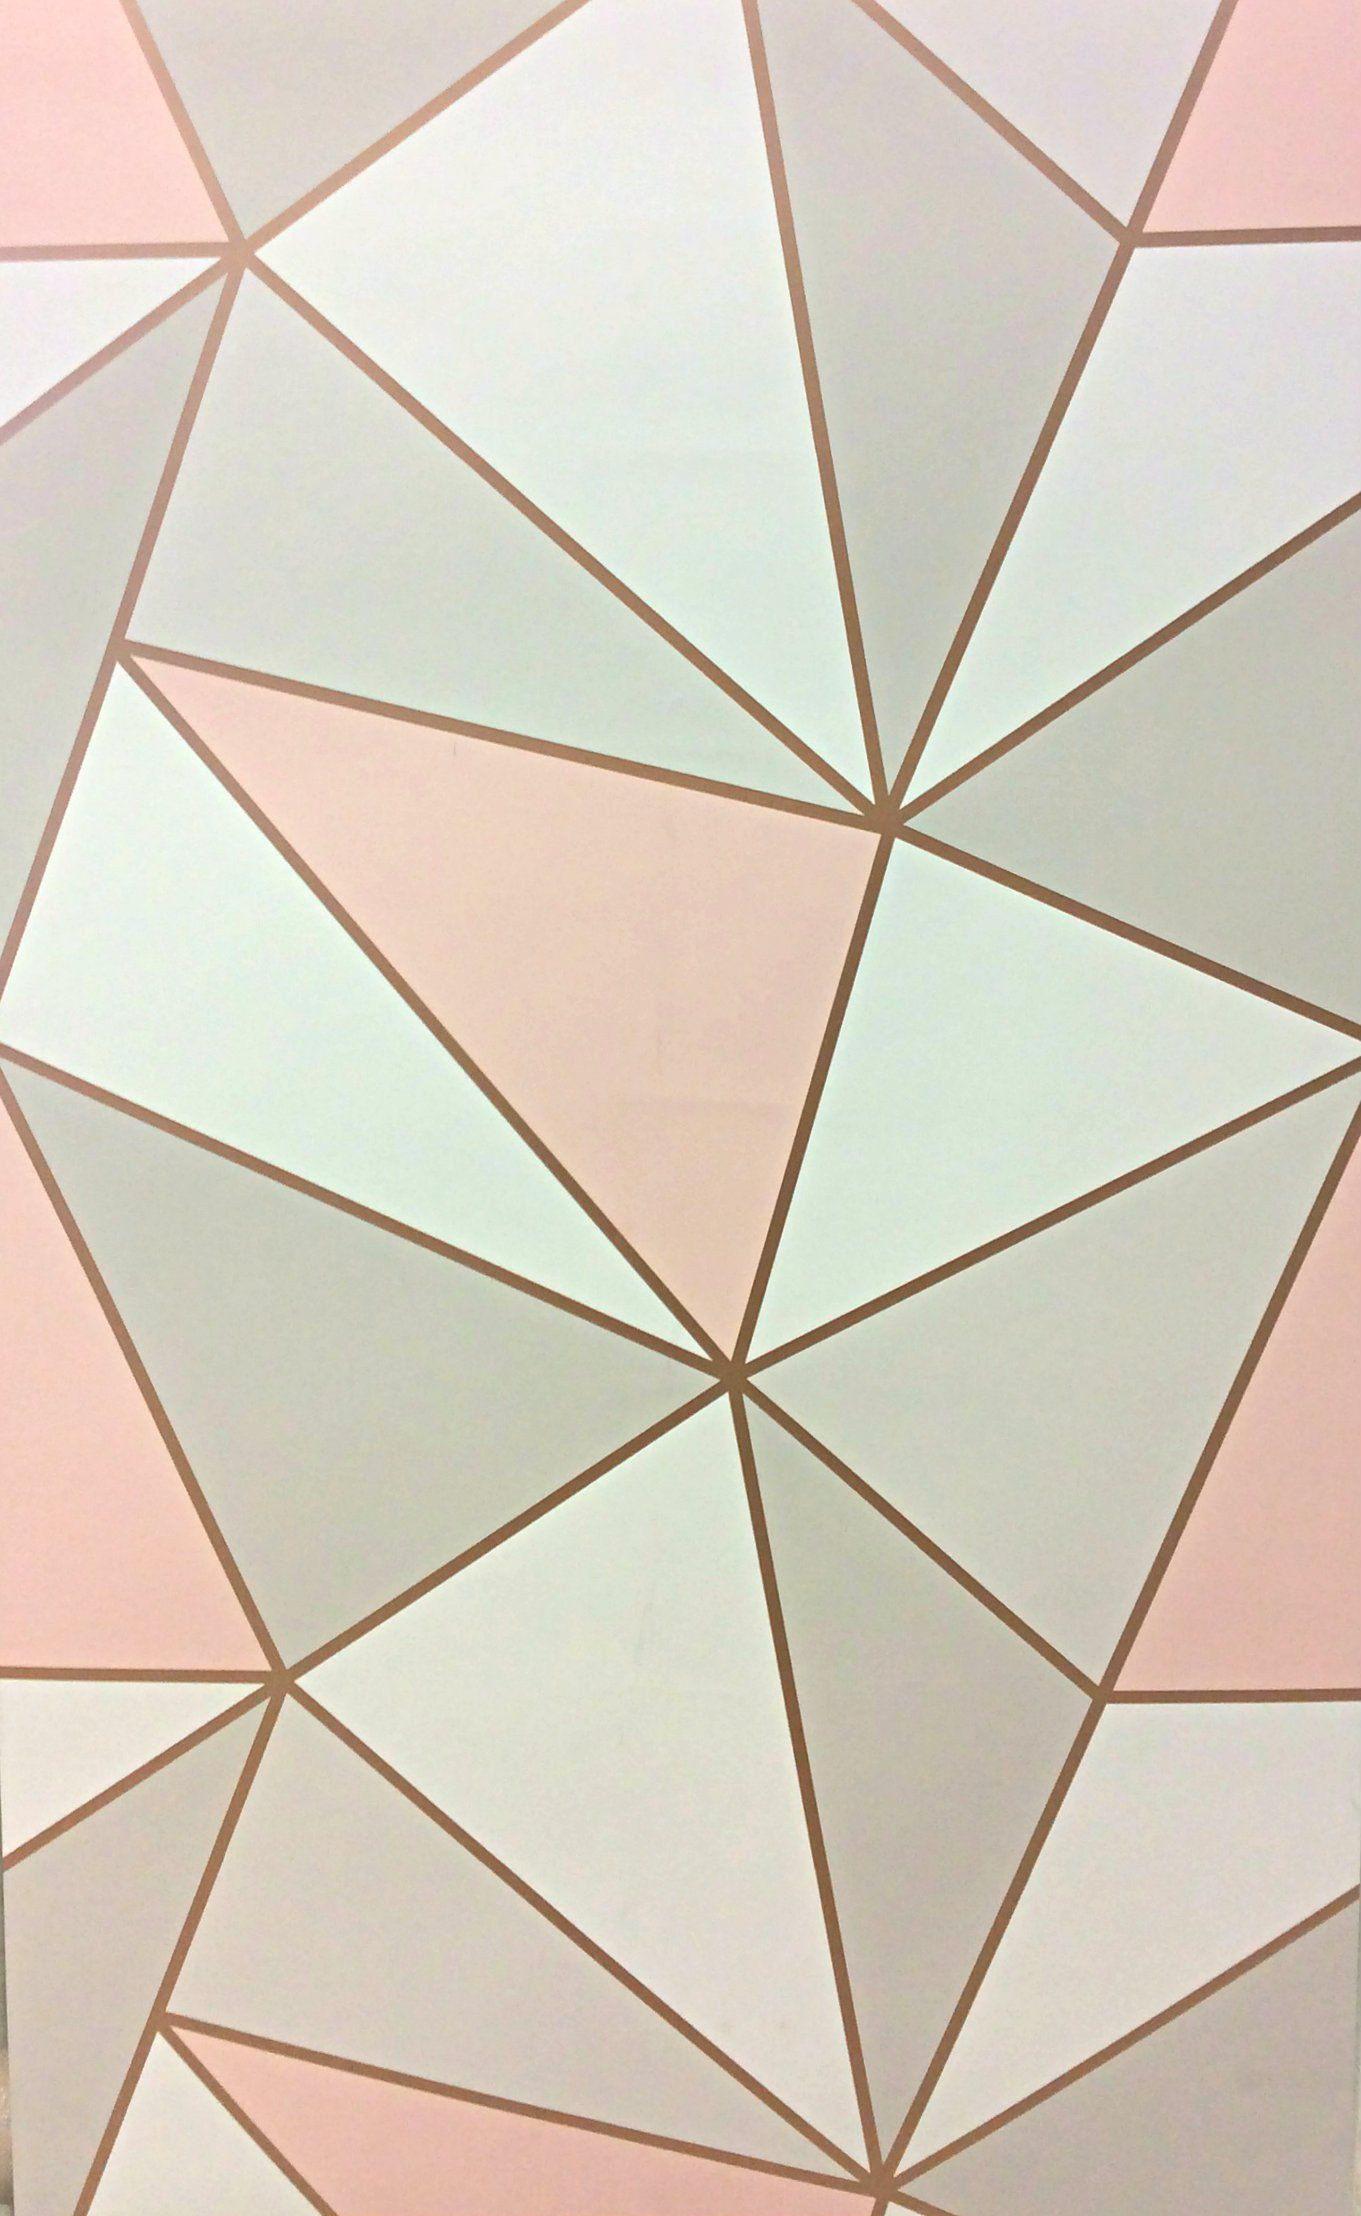 Apex Geometric Design In Rosegold Pink White And Copper 10 Metres